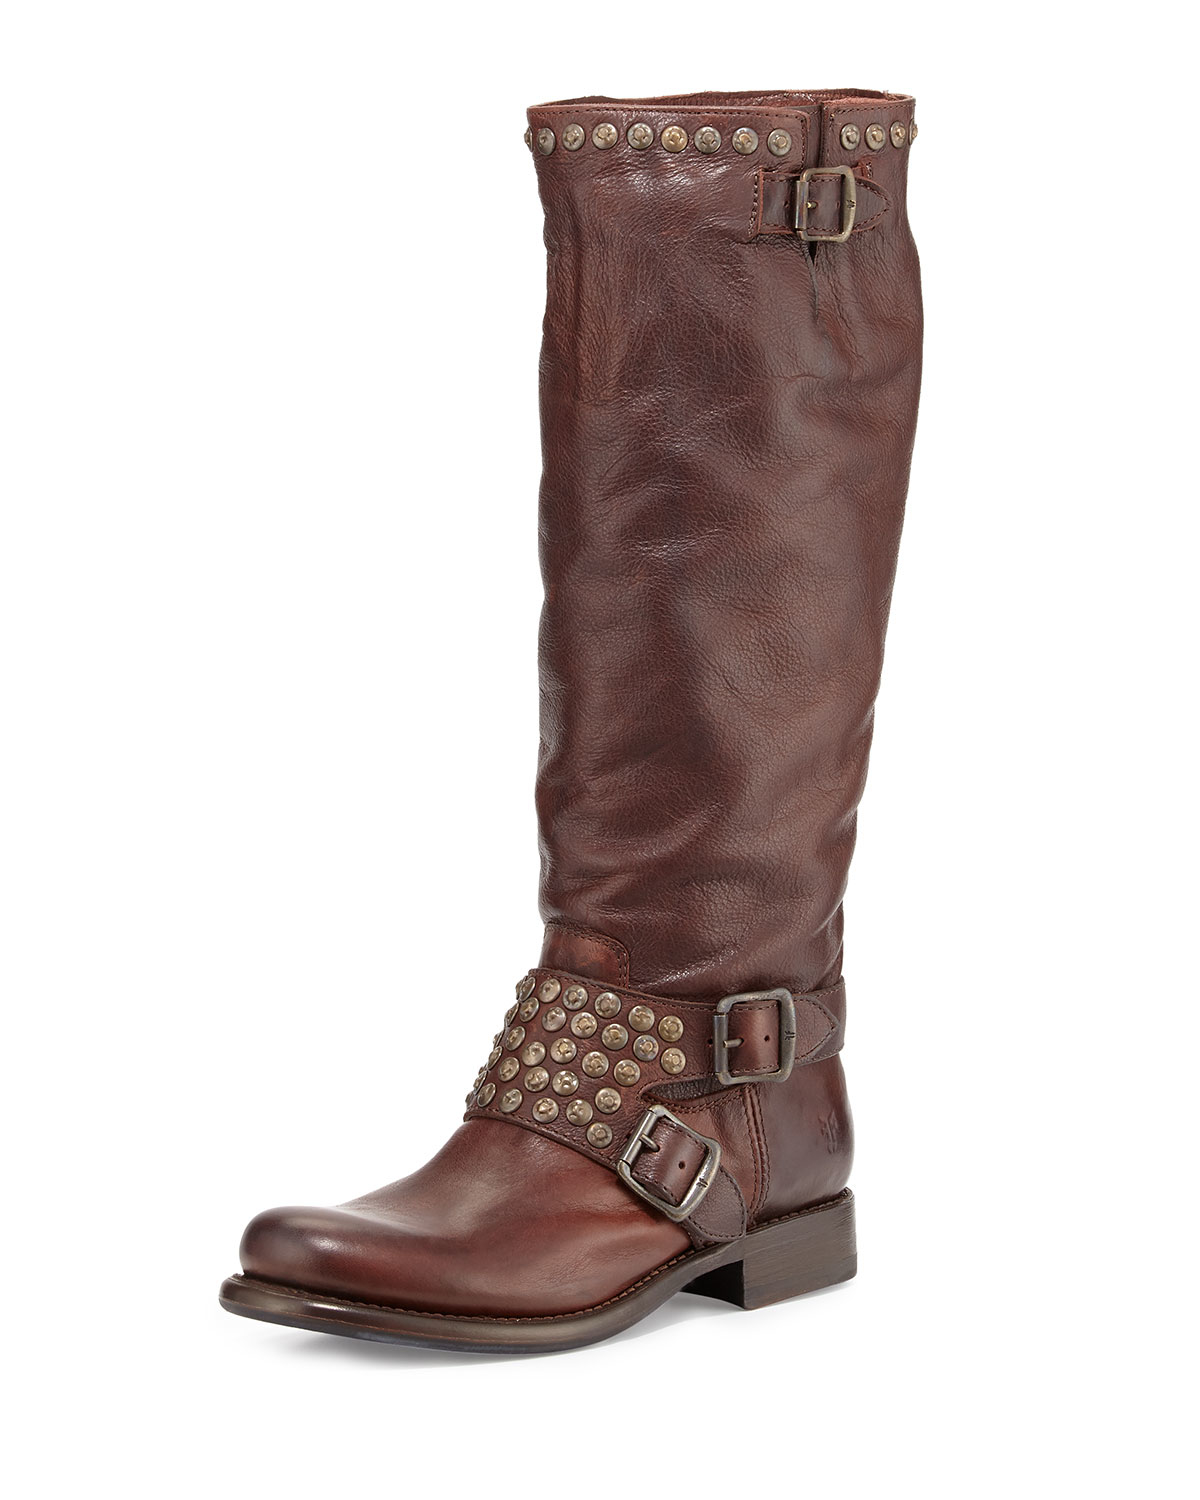 Lyst Frye Jenna Knee High Leather Boots In Brown